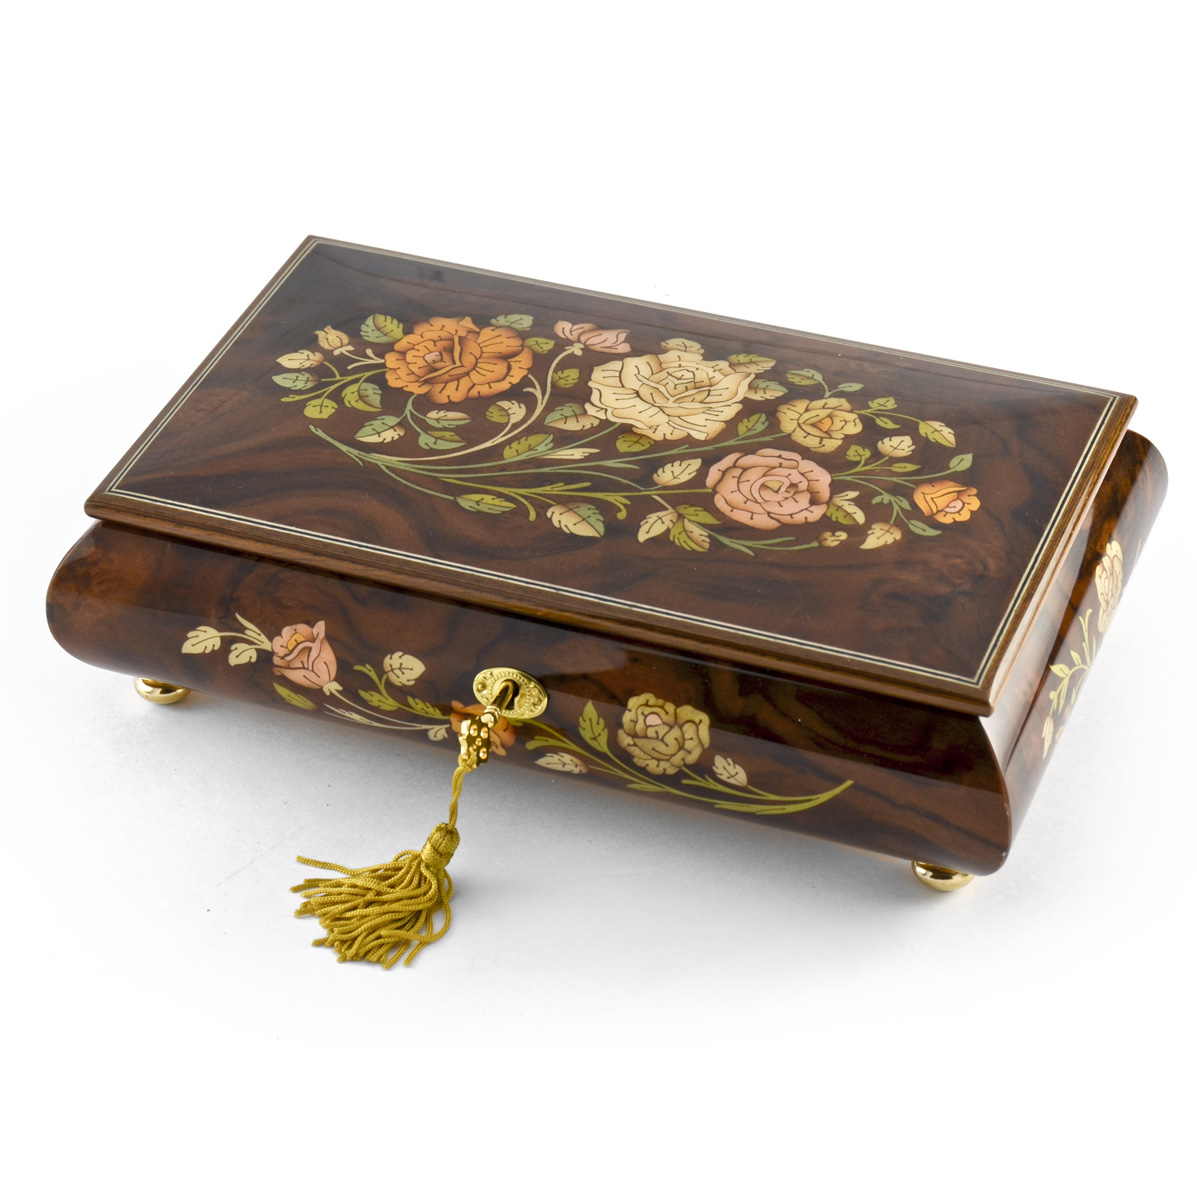 Enchanting Black Lacquer Single Red Rose with Gold Hardware Music Jewelry Box - It's Impossible - SWISS (+$45)